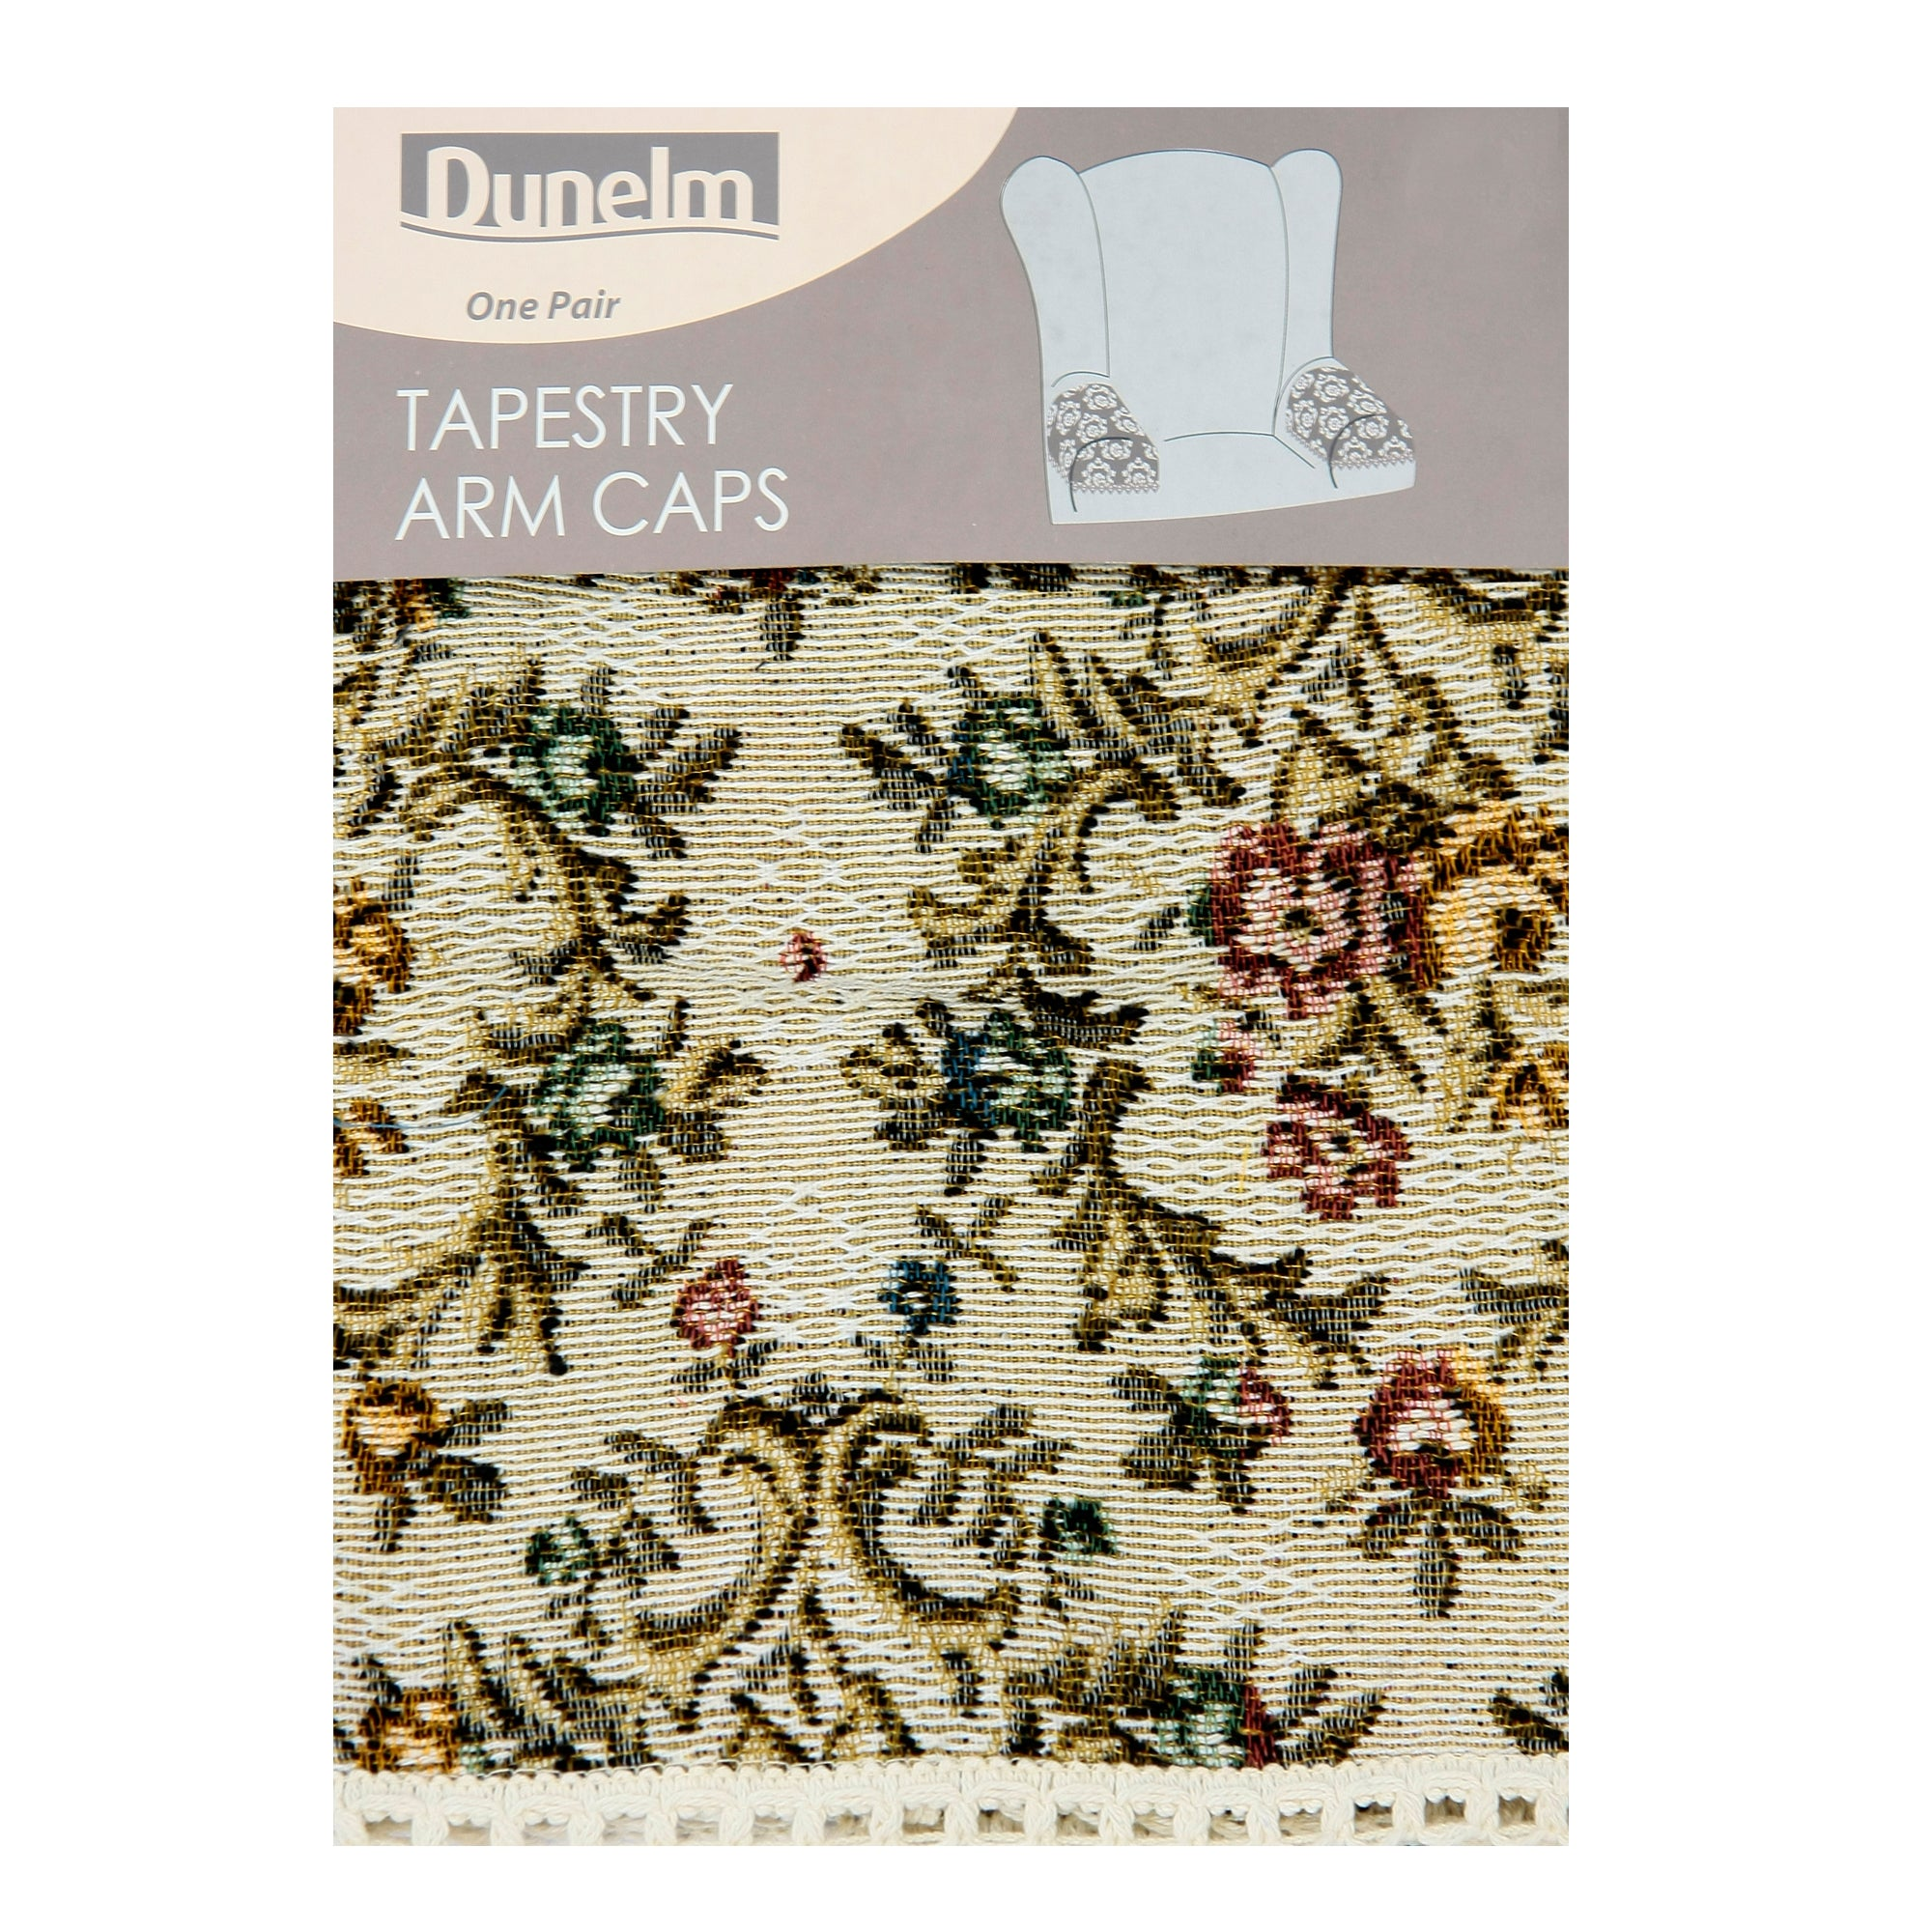 Tapestry Arm Caps